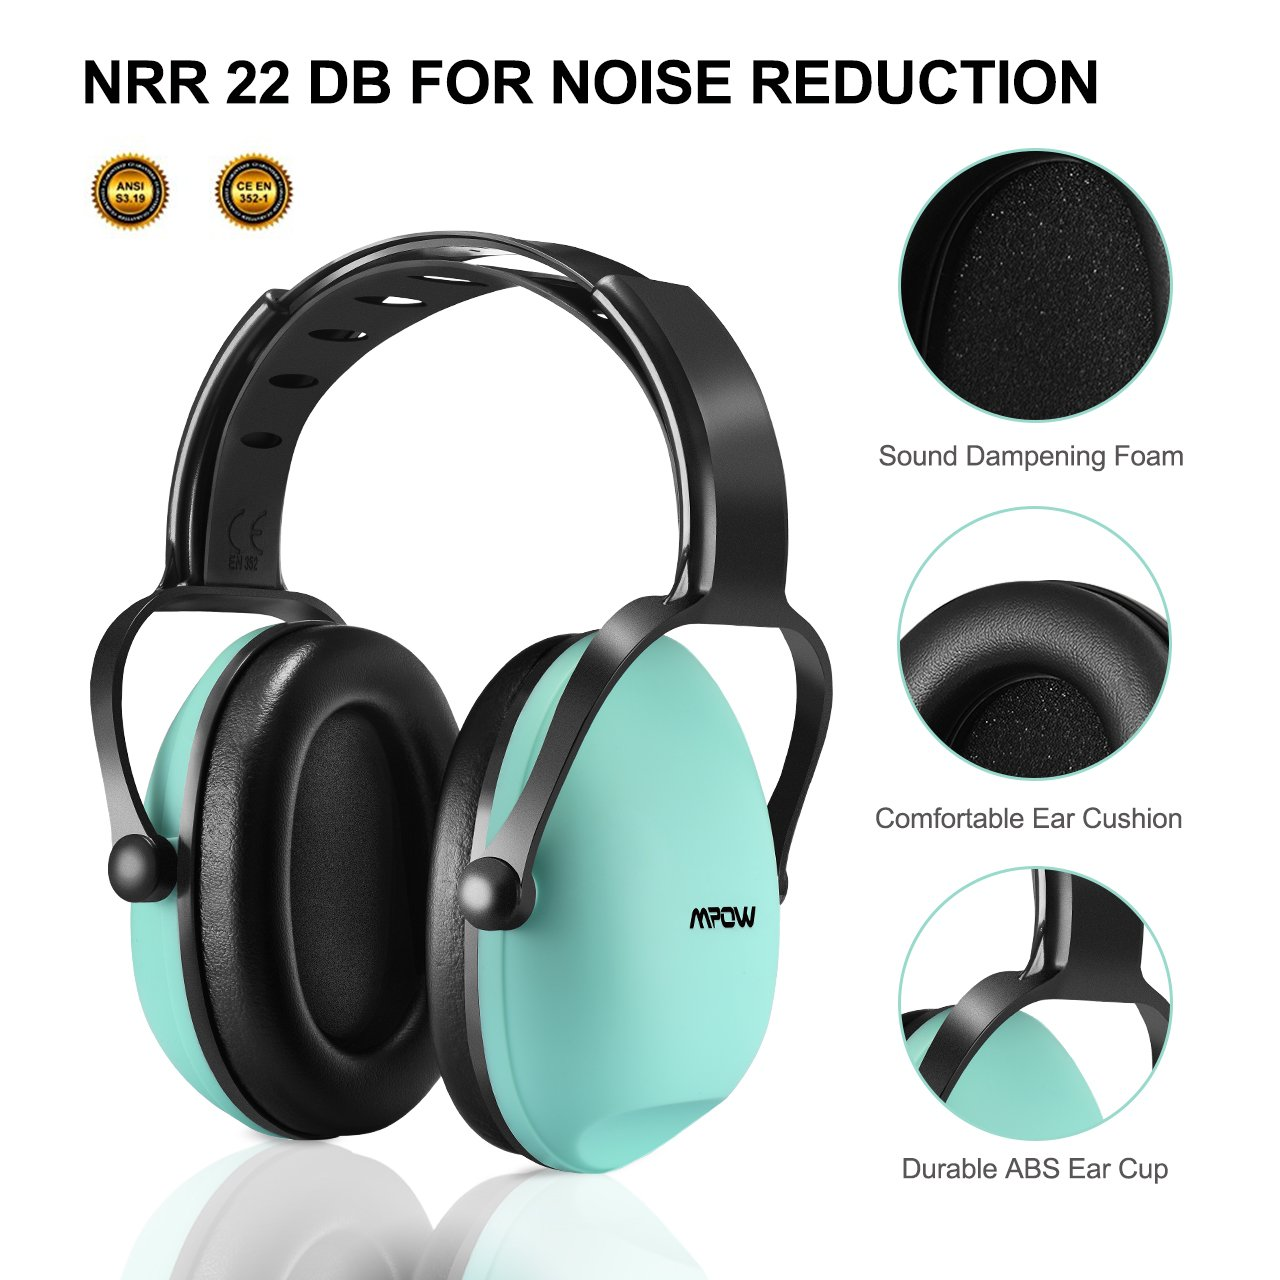 Mpow [Upgraded] Toddler Ear Protection Noise Cancelling Headphones for Kids, NRR 22dB Adjustable & Soft Kids Ear Protection for Shooting Range Hunting, Hearing Protection for Kids Toddlers Children by Mpow (Image #3)